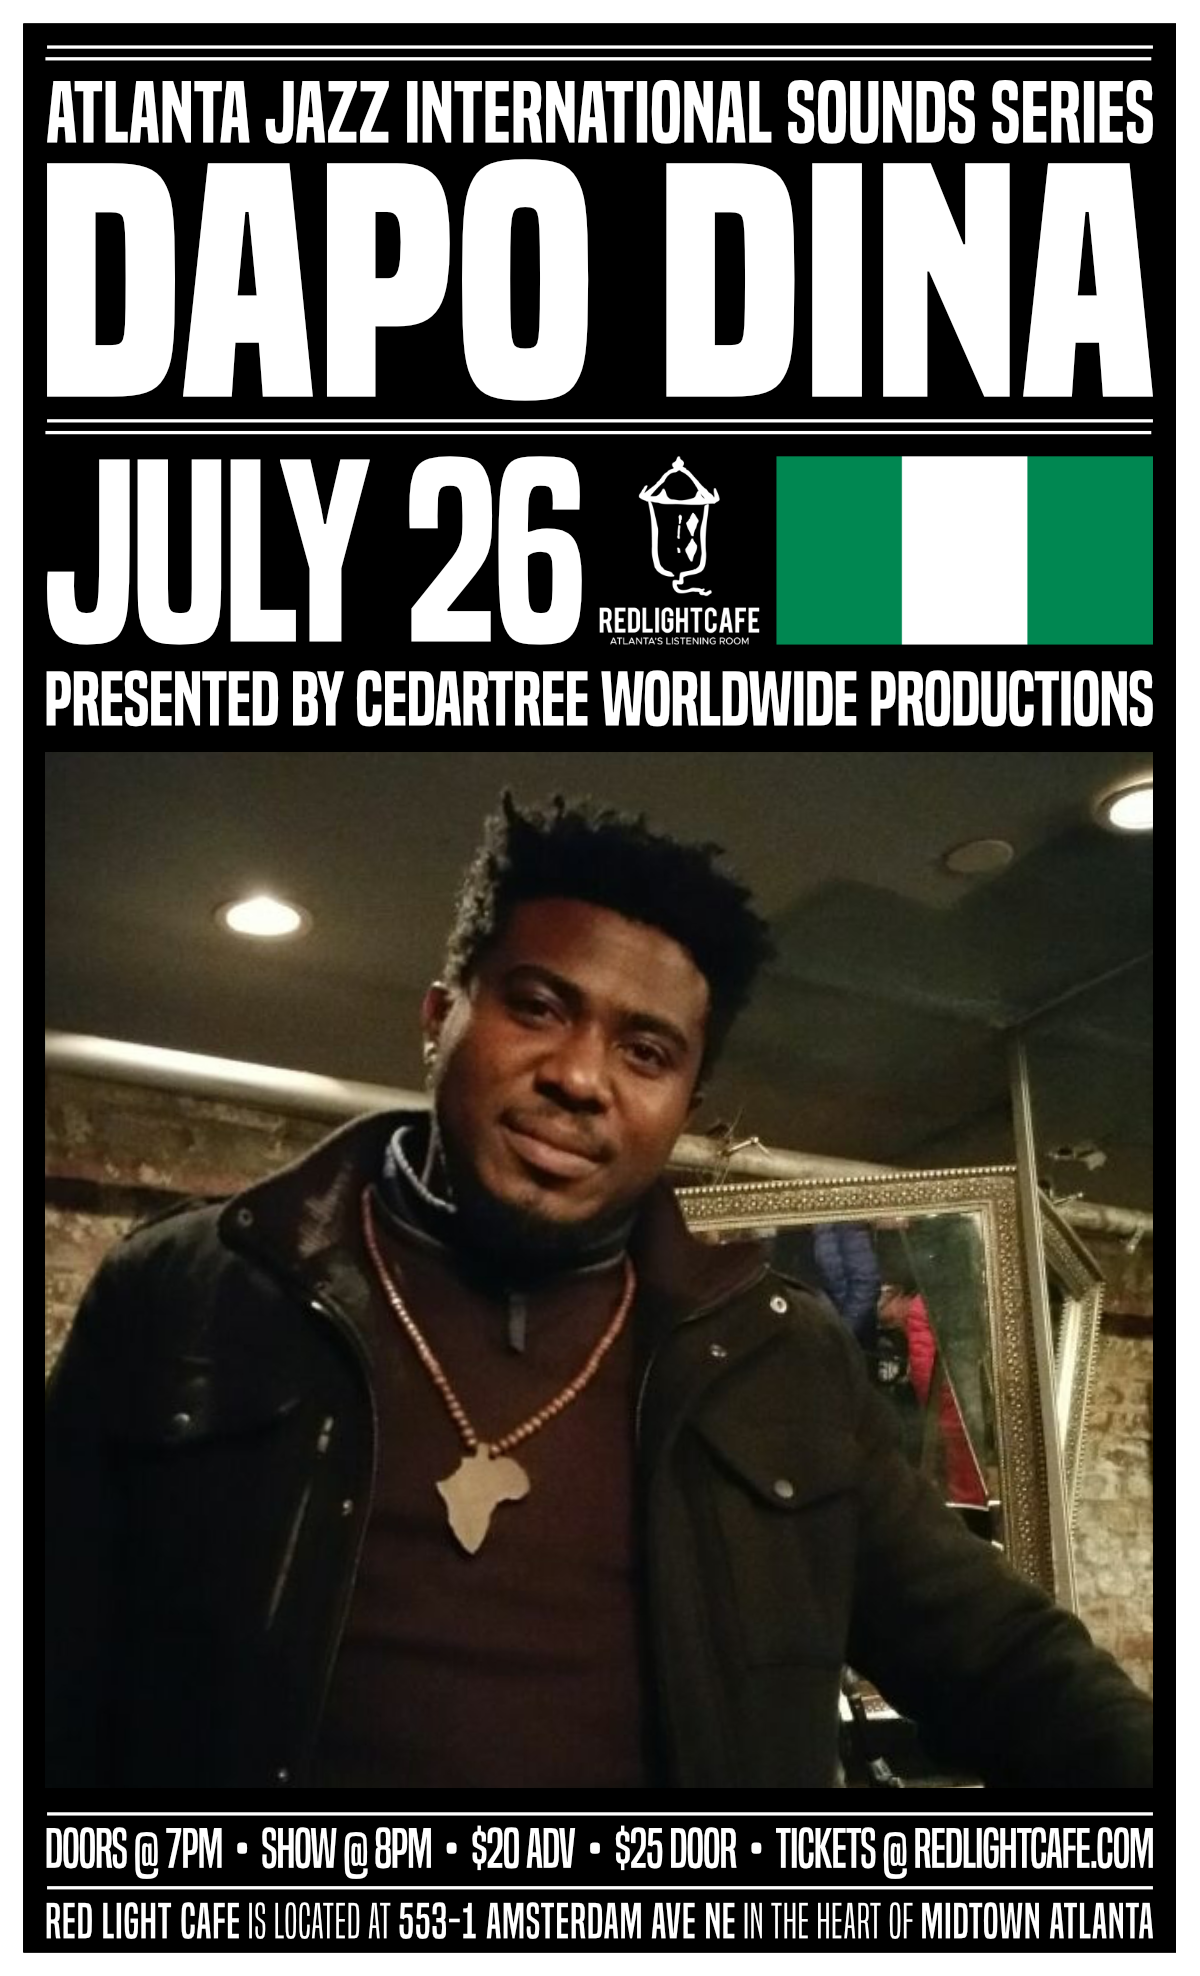 Atlanta Jazz International Sounds Series: Dapo Dina — July 26, 2019 — Red Light Café, Atlanta, GA